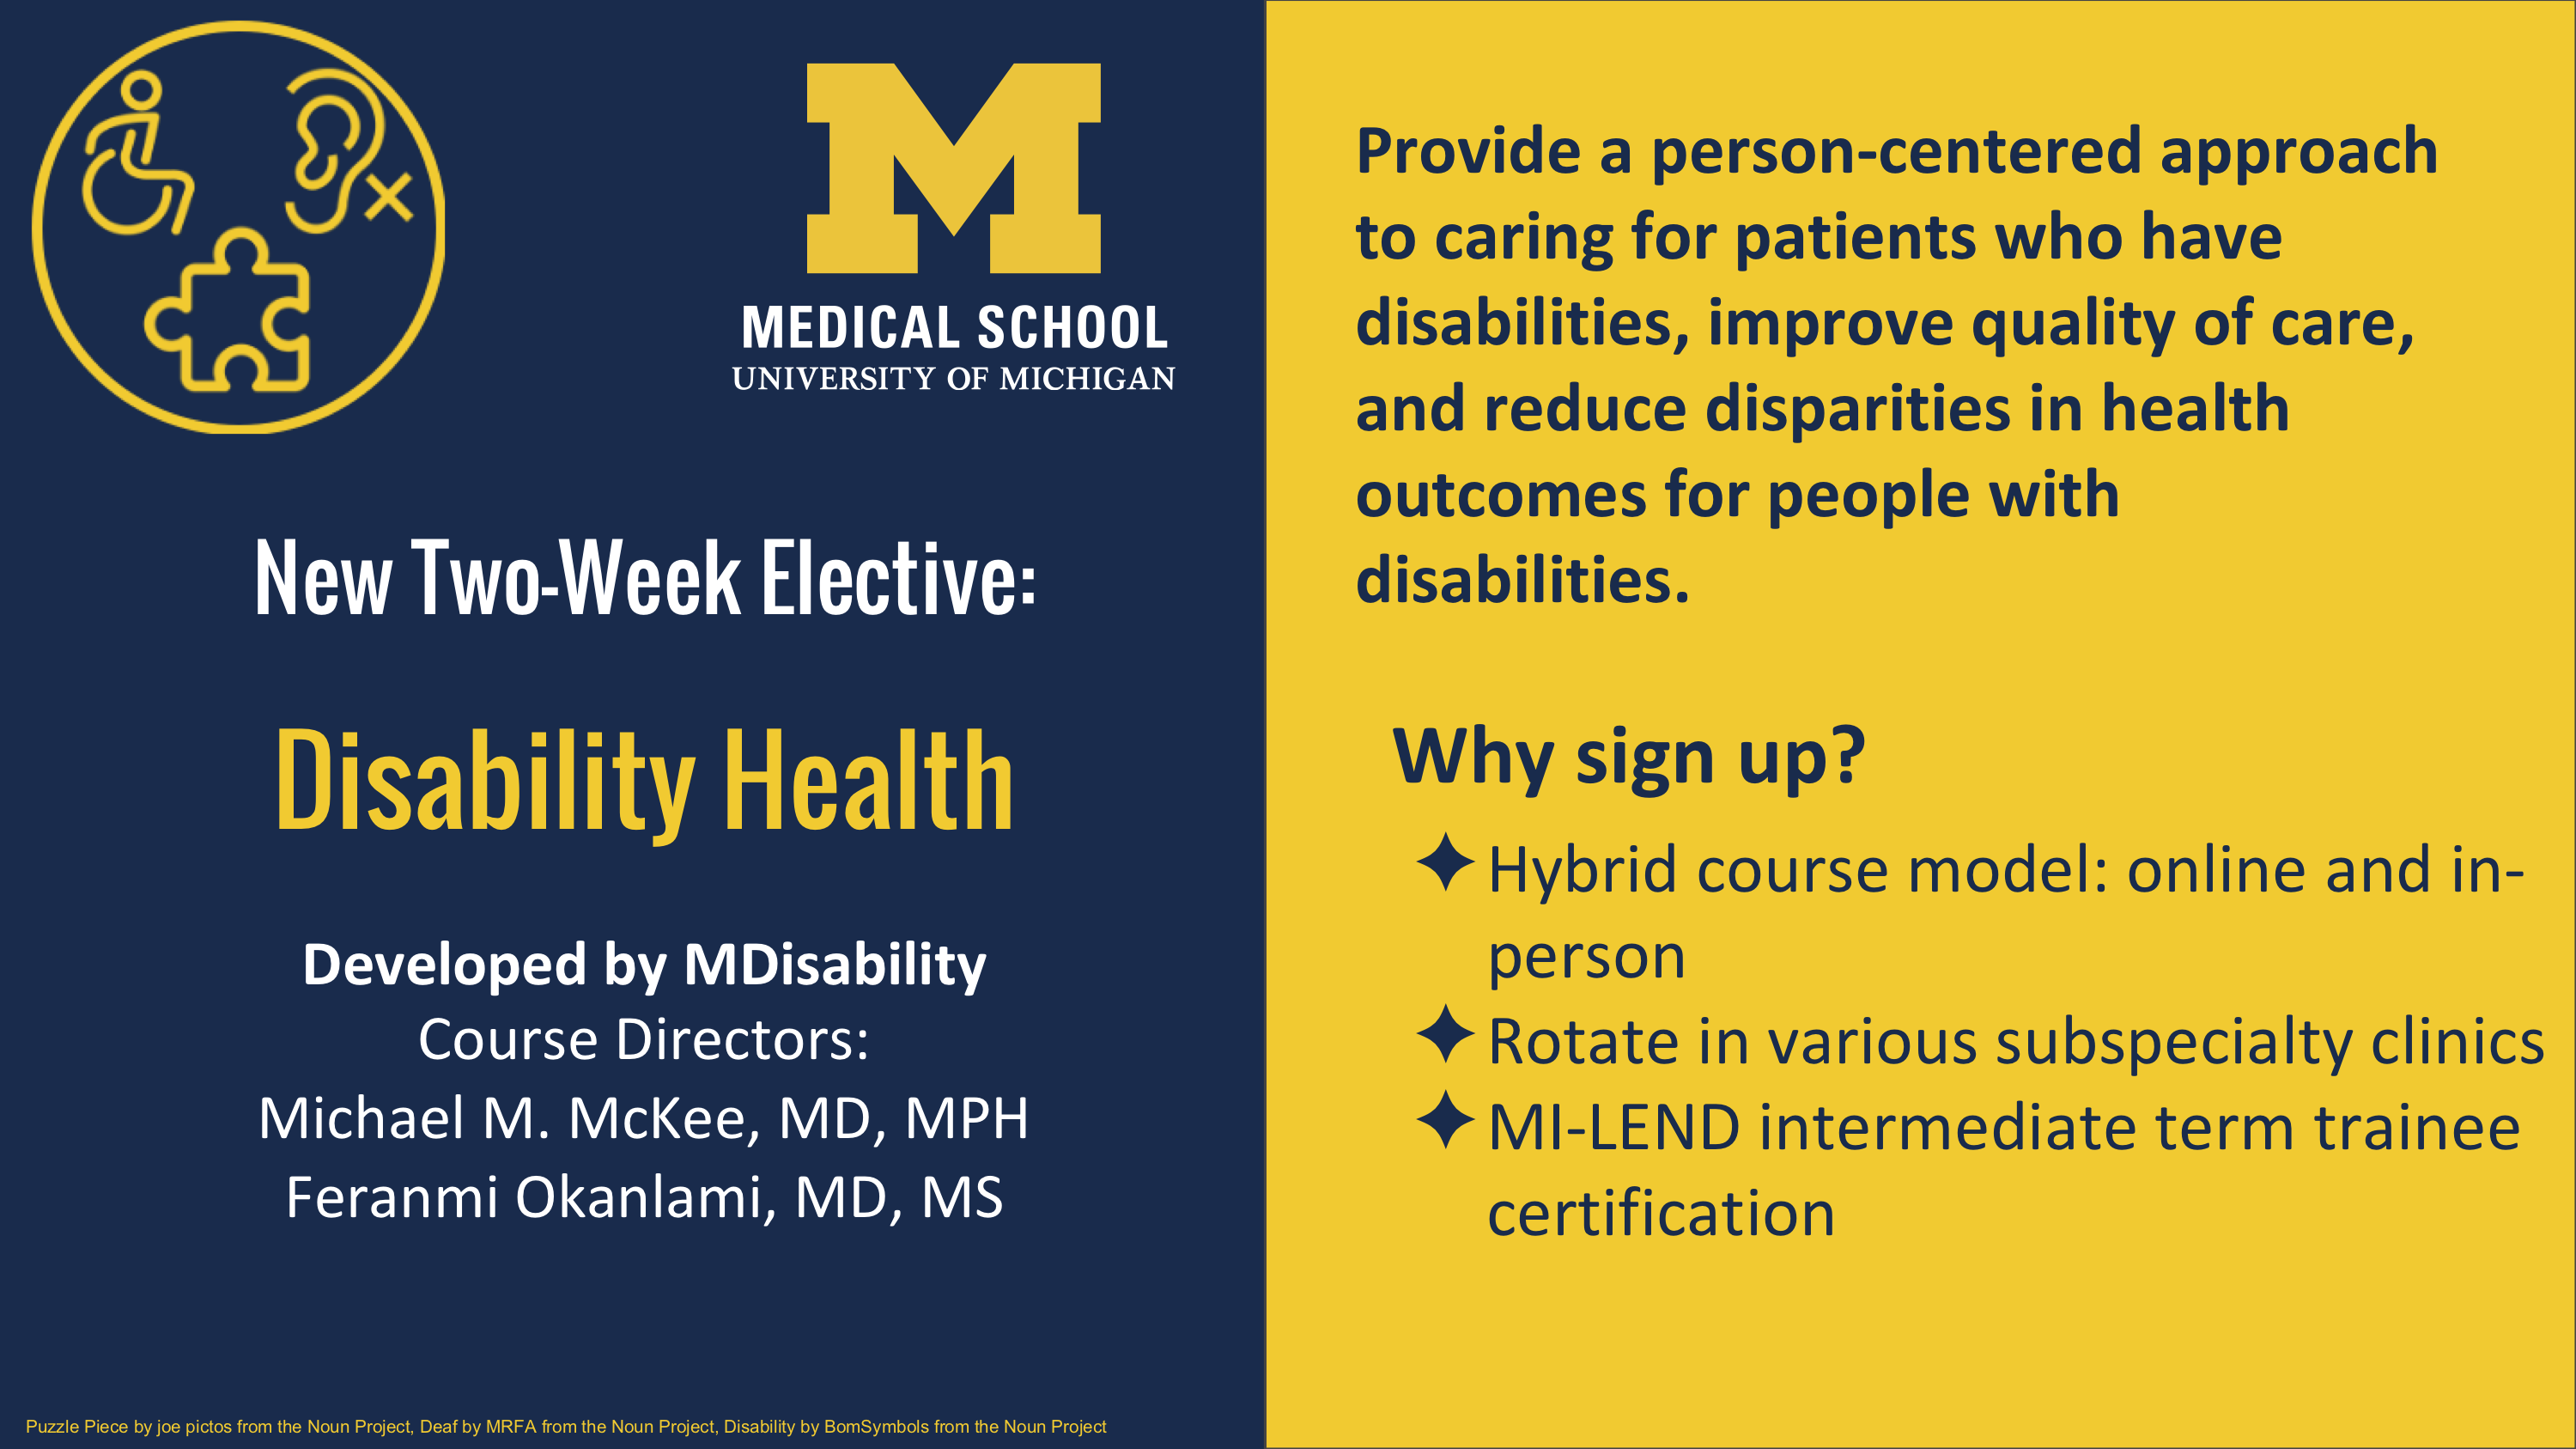 New Two-Week Elective: Disability Health Developed by MDisability Course Directors: Michael M. McKee, MD, MPH Feranmi Okanlami, MD, MS. Provide a person-centered approach to caring for patients who have disabilities, improve quality of care, and reduce di